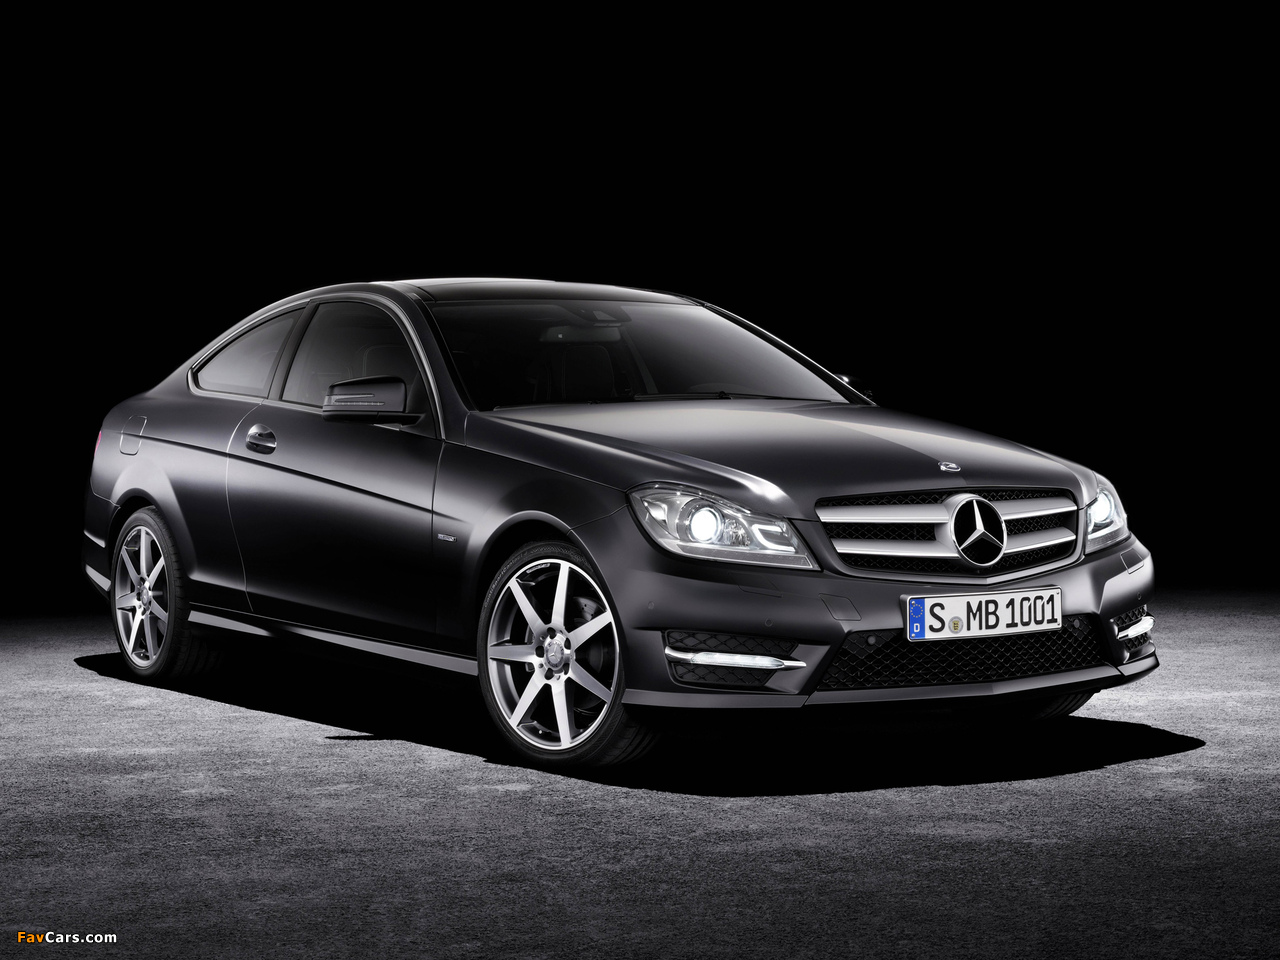 Mercedes-Benz C 250 CDI Coupe (C204) 2011 wallpapers (1280 x 960)